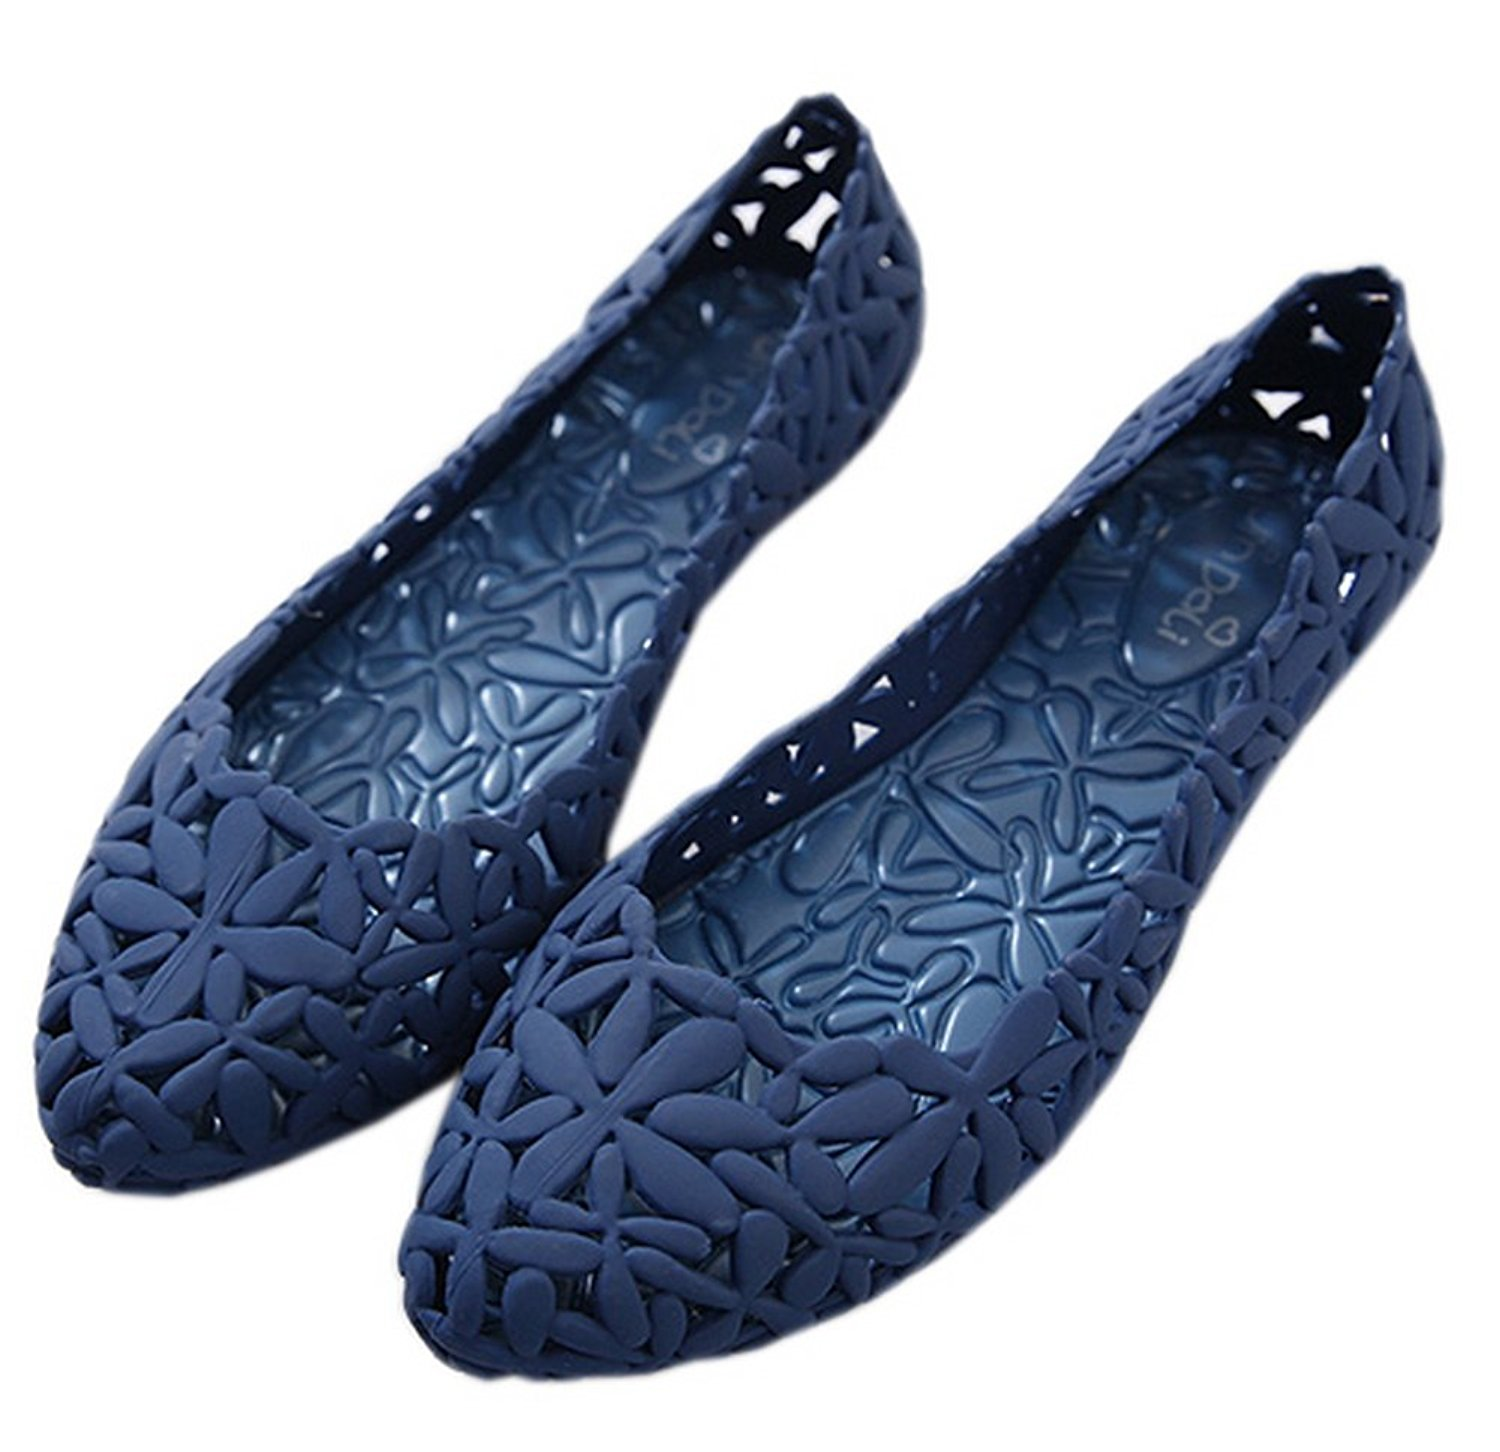 9861511cdb77 Get Quotations · Vokamara Women Flower Hollow Out Pointy Toe Jelly Ballet  Flat